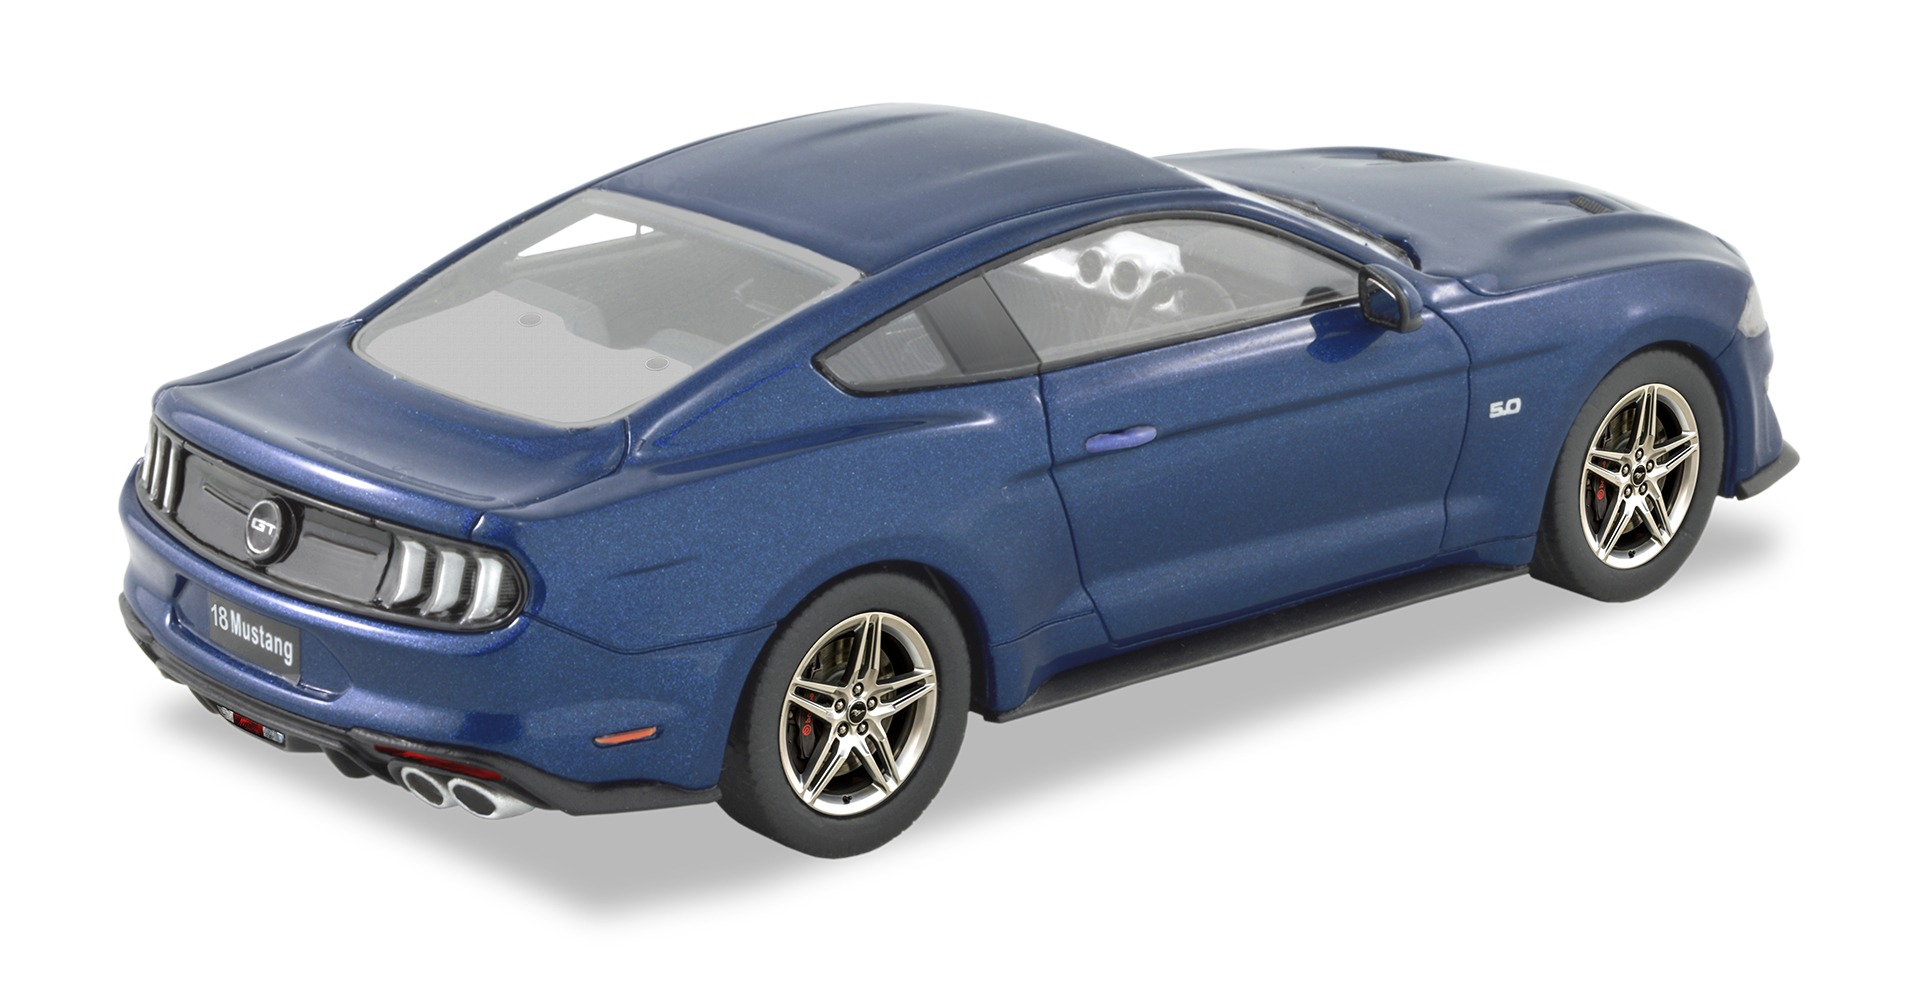 2018 Ford Mustang – Kona Blue.